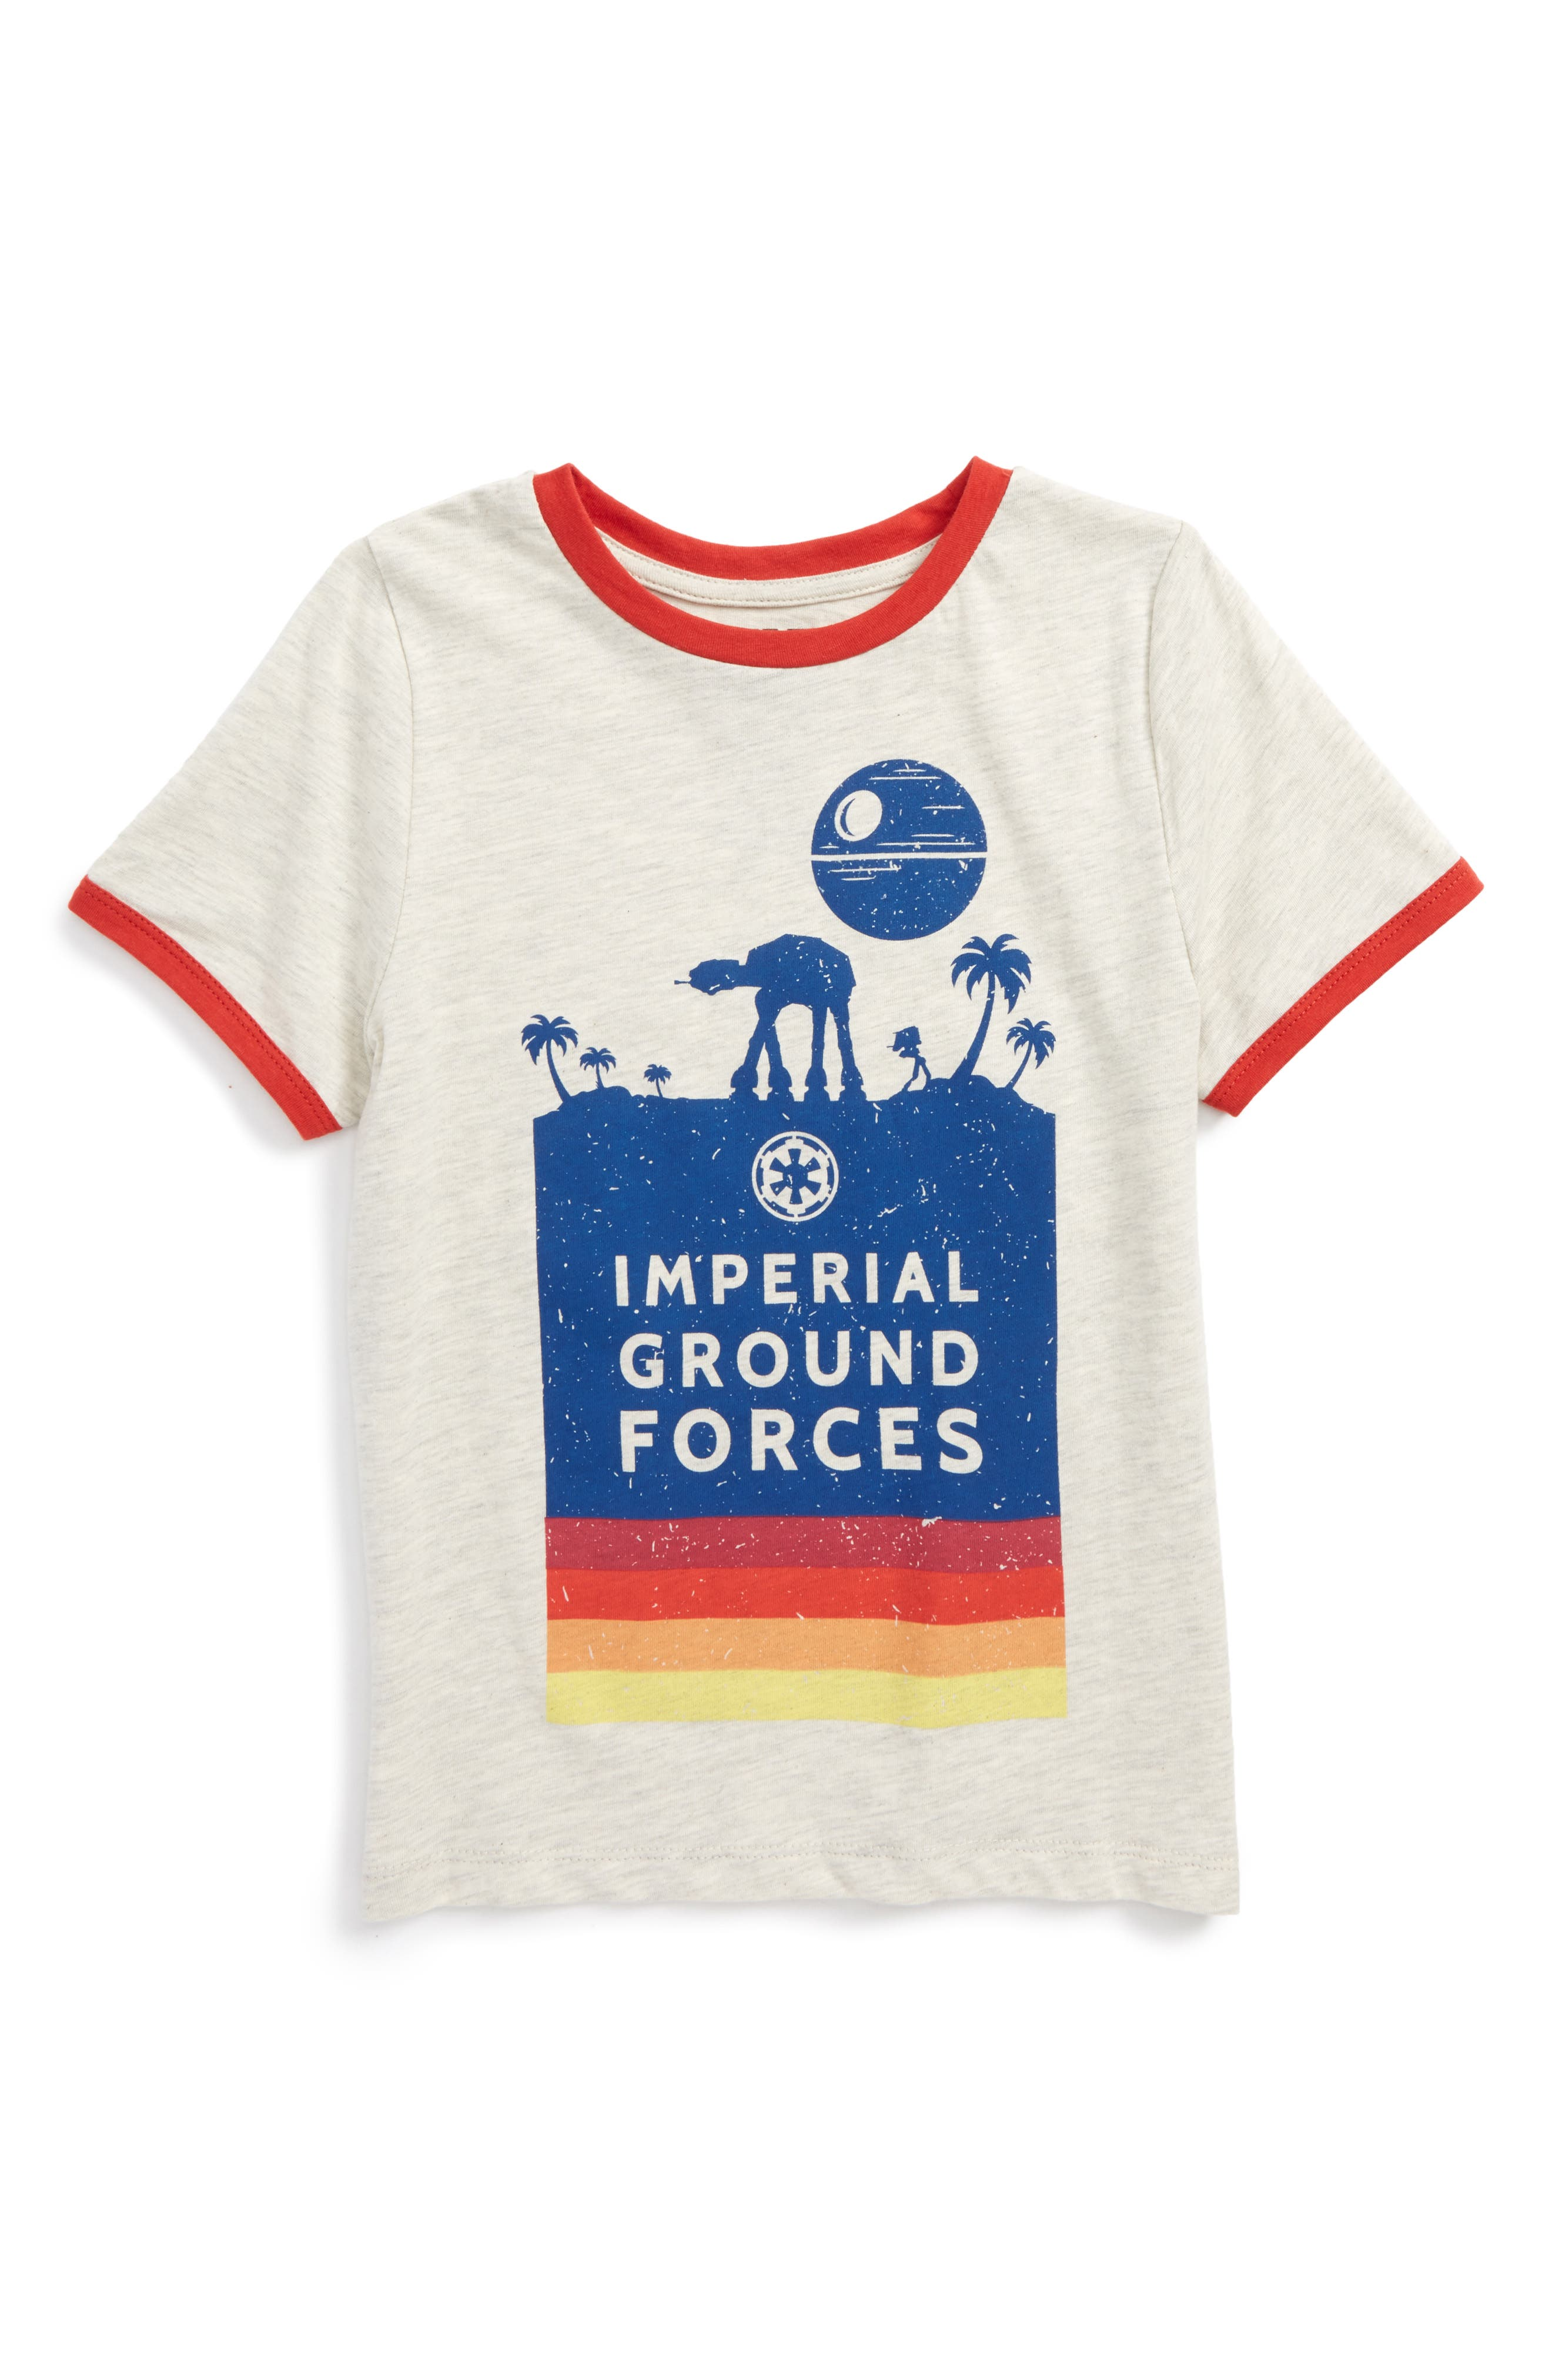 x Star Wars<sup>™</sup> Imperial Ground Forces T-Shirt,                             Main thumbnail 1, color,                             020